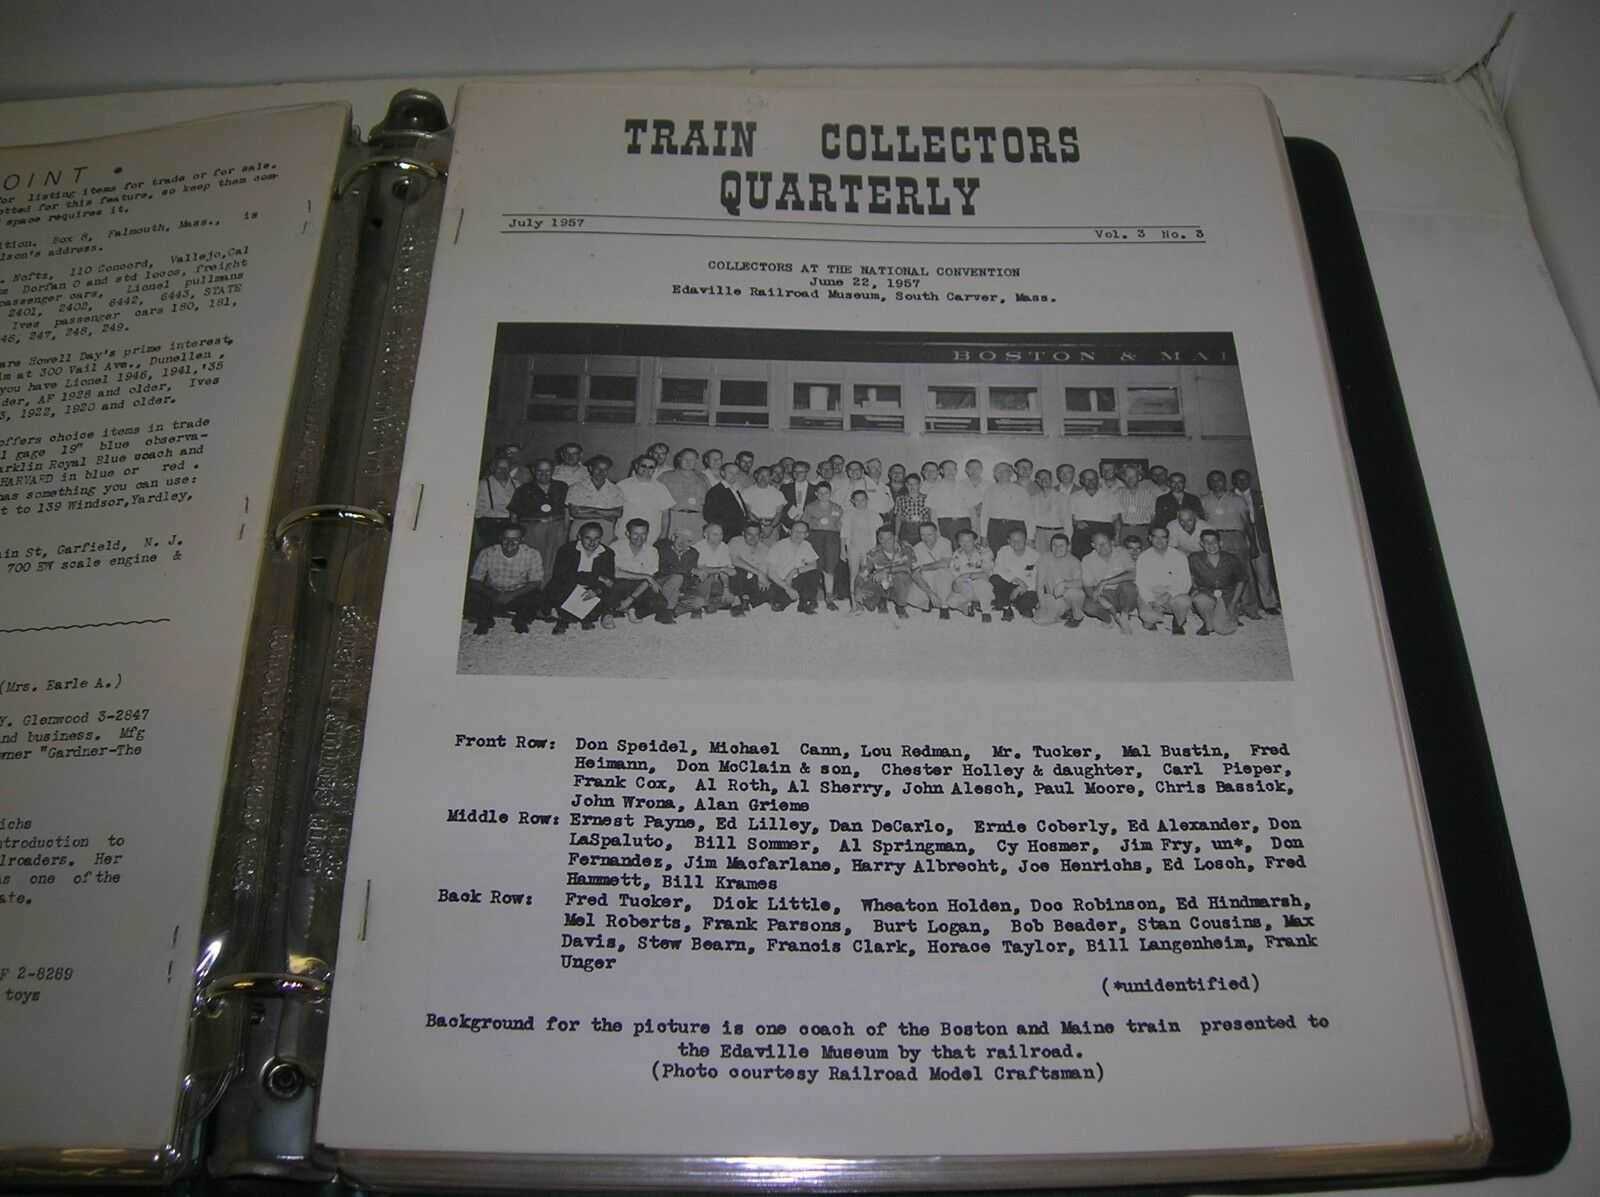 TRAIN COLLECTORS QUARTERLY NEWS LETTER JULY 1957 VOL. 3 NO. 3- MAKE OFFERS